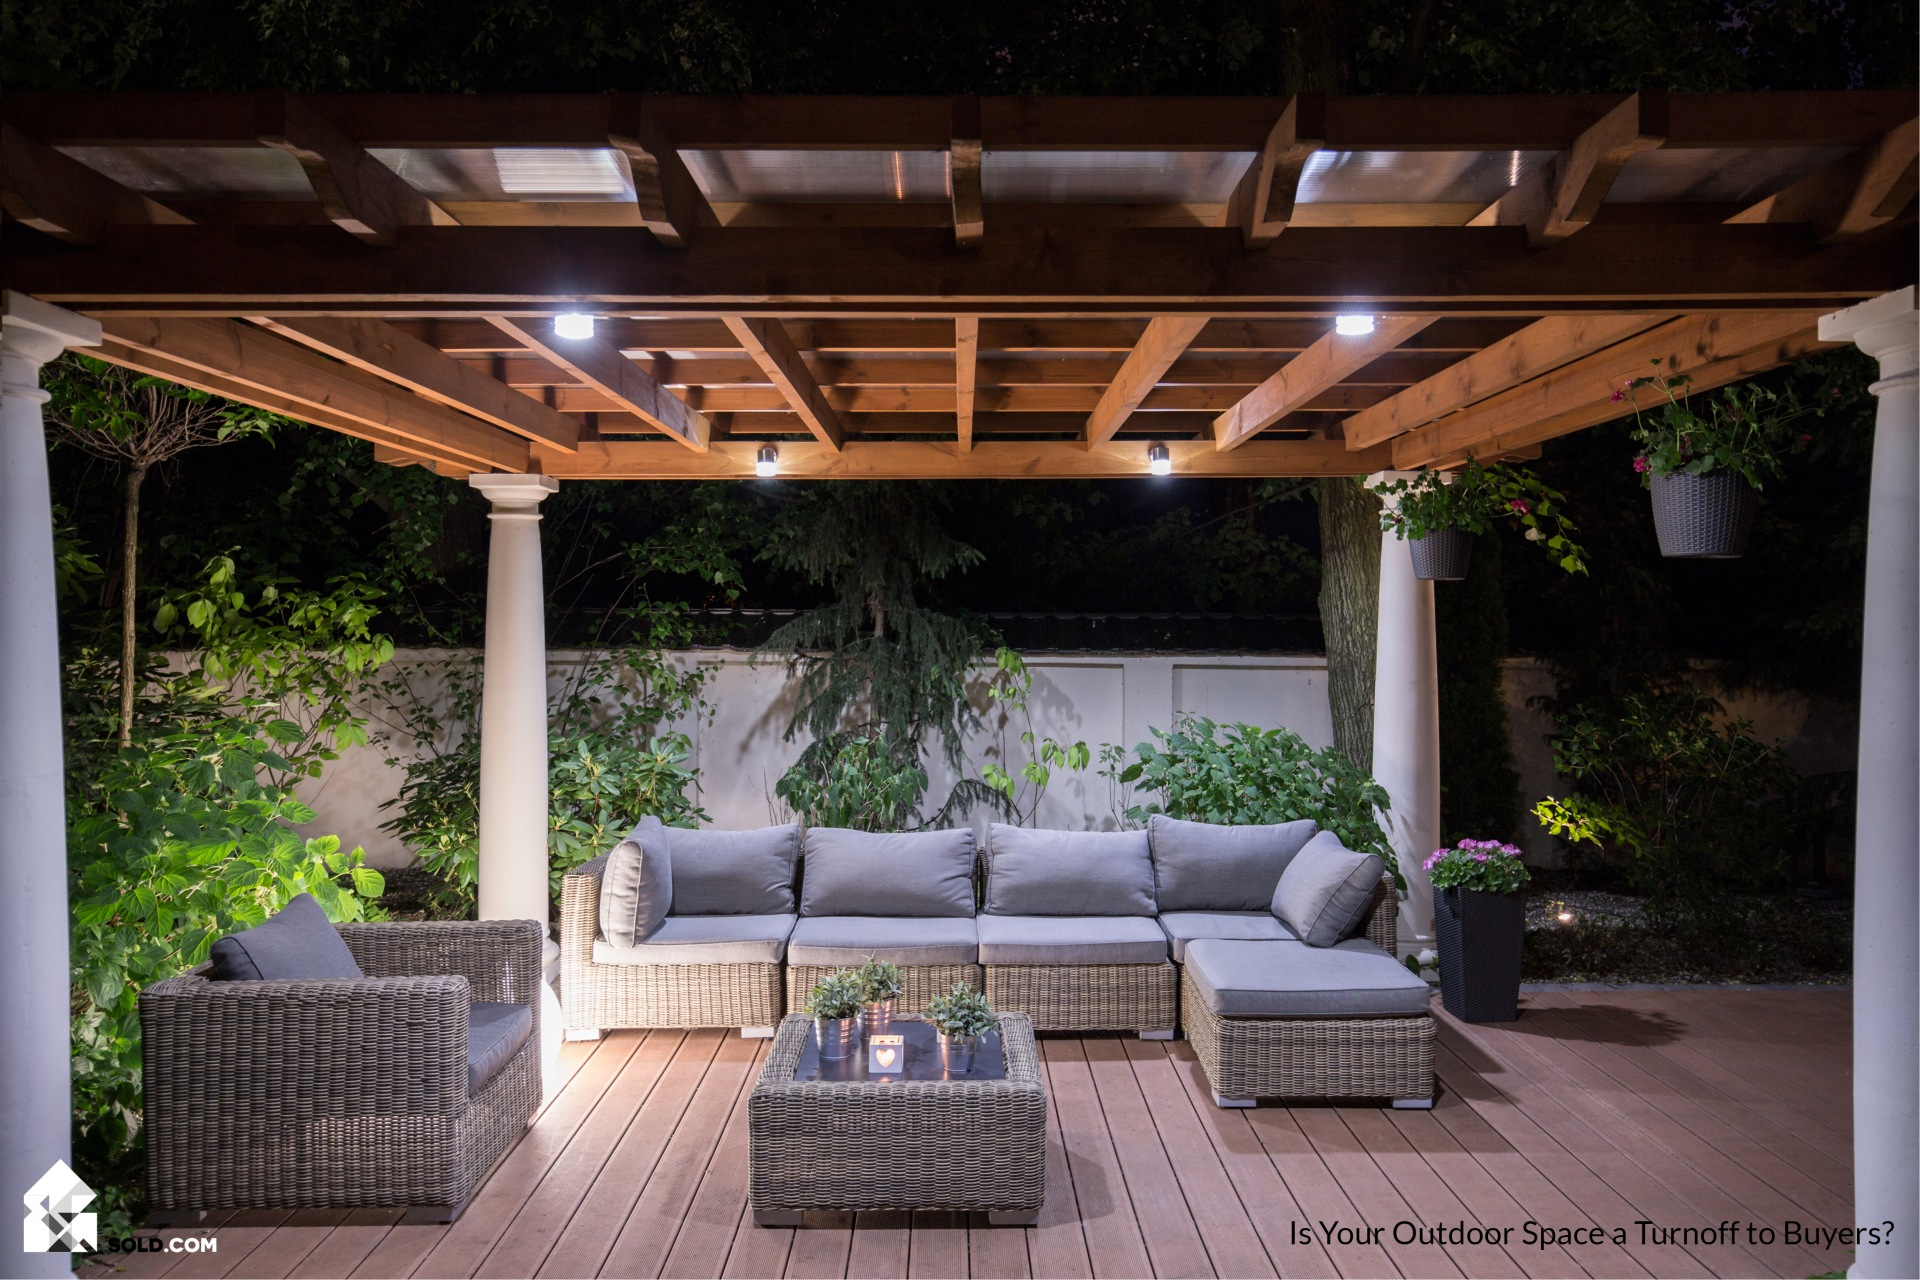 Is Your Outdoor Space a Turnoff to Buyers?